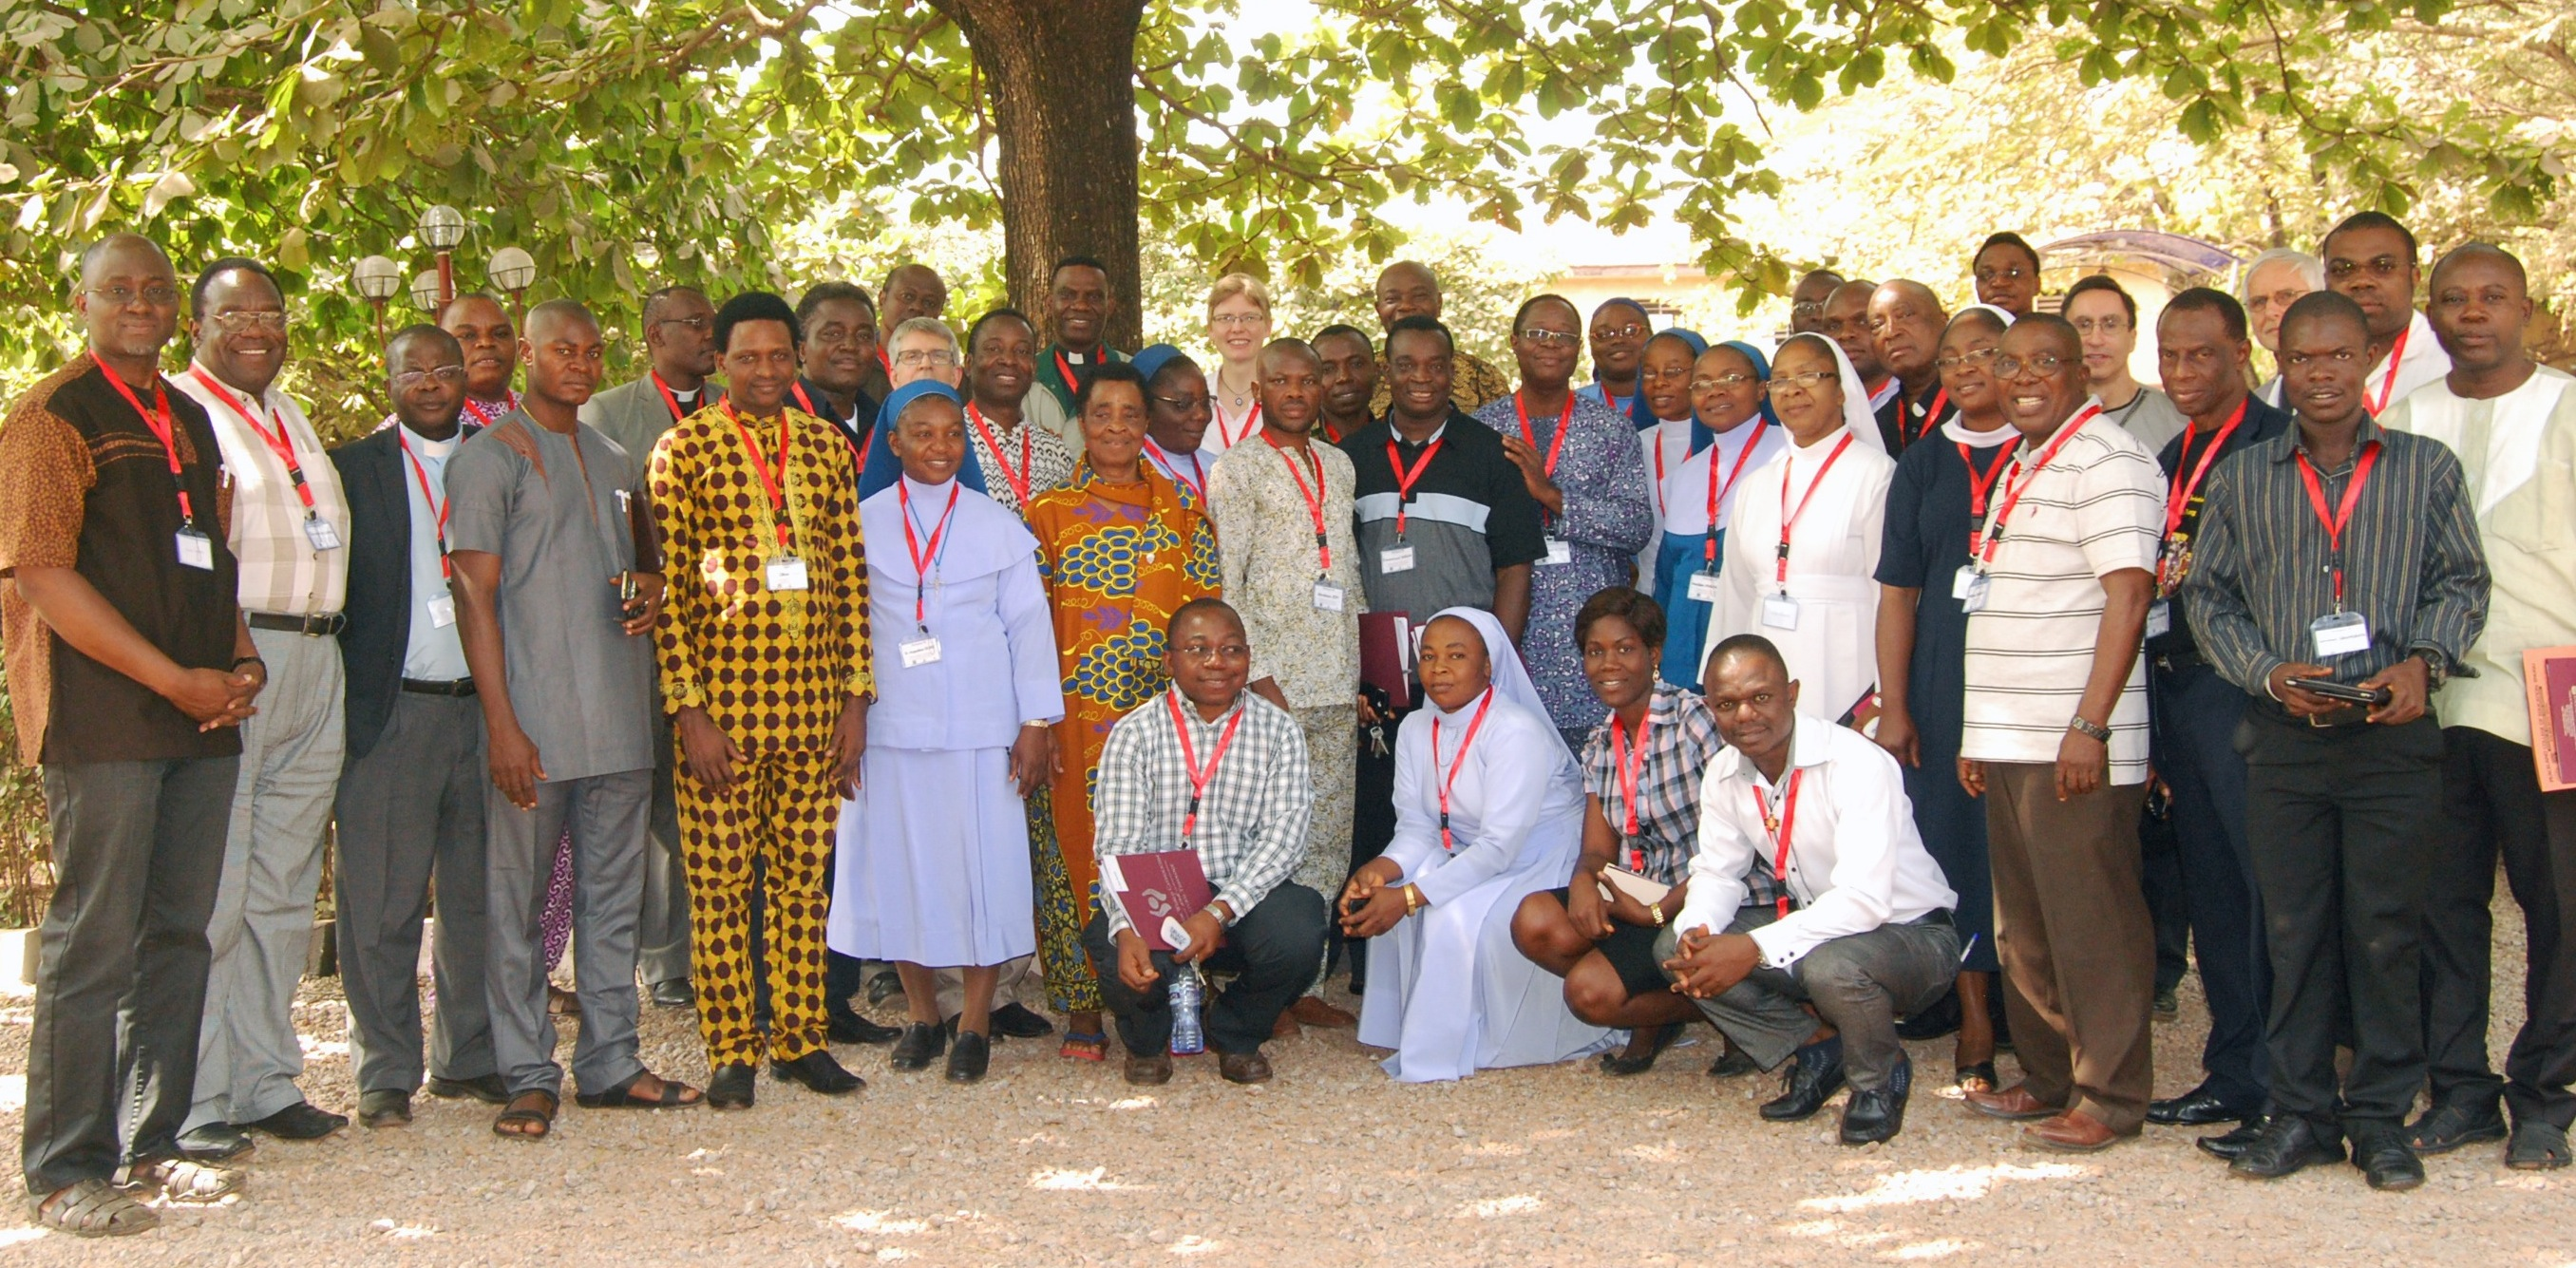 December 2015 in Enugu, Nigeria—Speakers & participants of the International Colloquium on the Future of African Catholicism, organized by CWCIT in collaboration with Spiritan International School of Theology and Peaceland College of Education, both in Nigeria